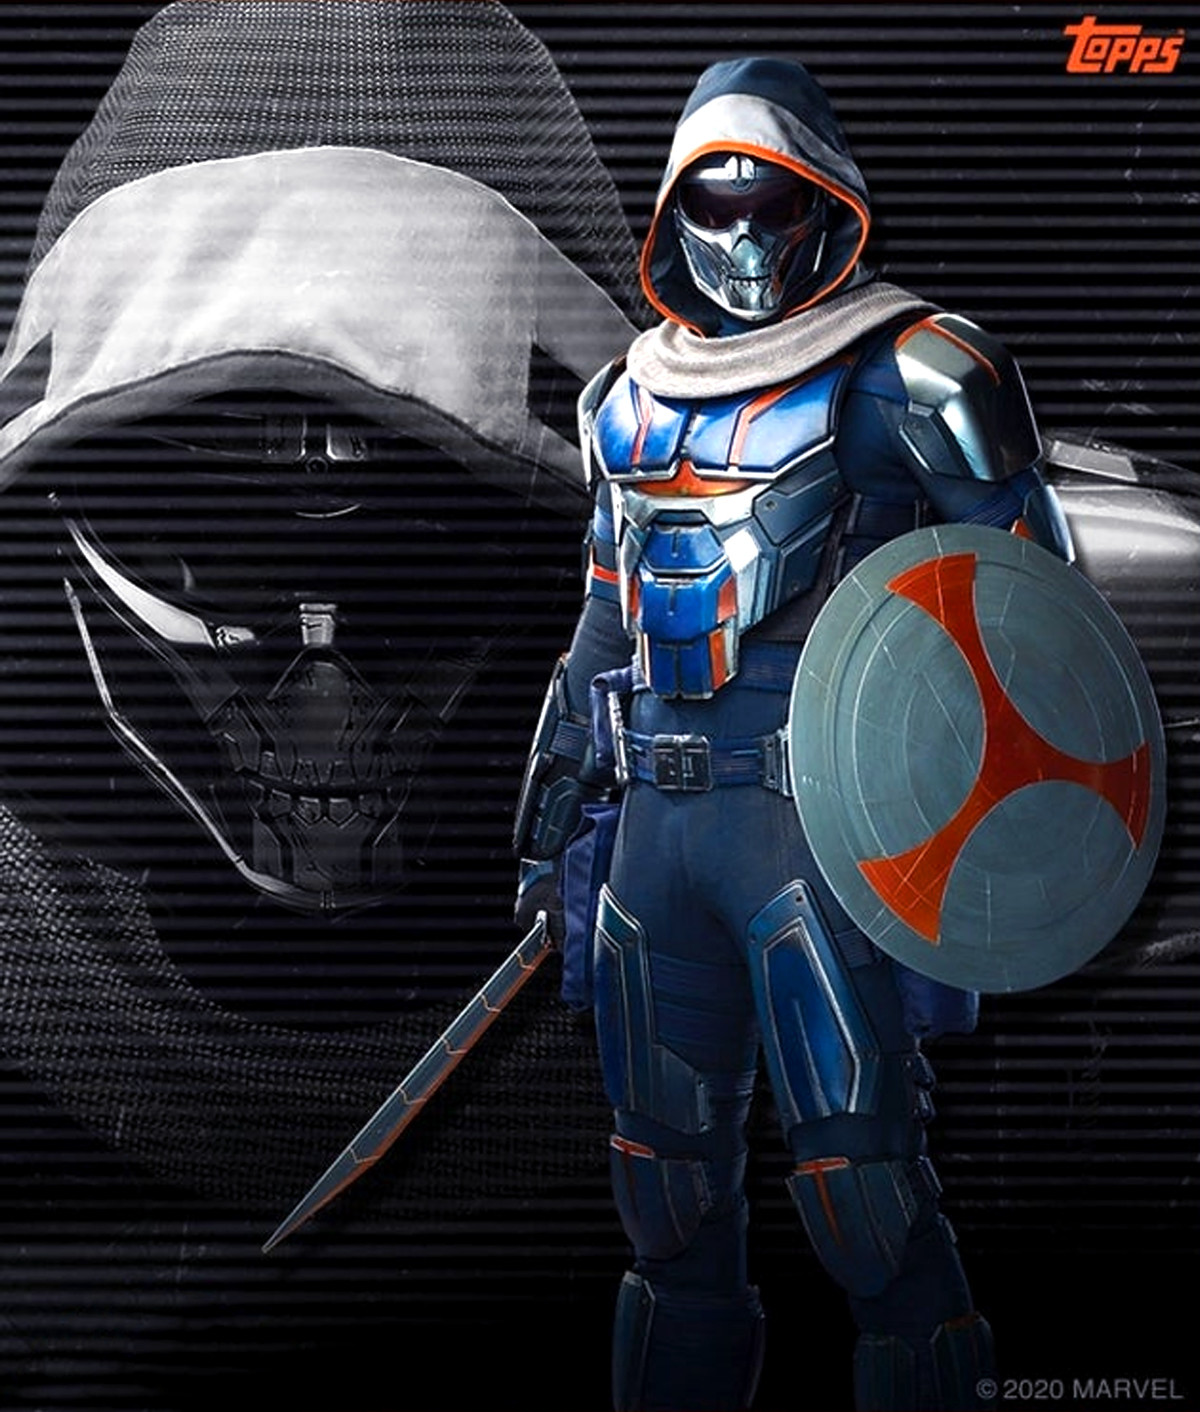 Taskmaster for the upcoming Black Widow movie. .. It's not bad, I'll admit But I'd prefer the mask to be white so it matches the skull mask in the comics, and I'd prefer a bit more white around the body. But as